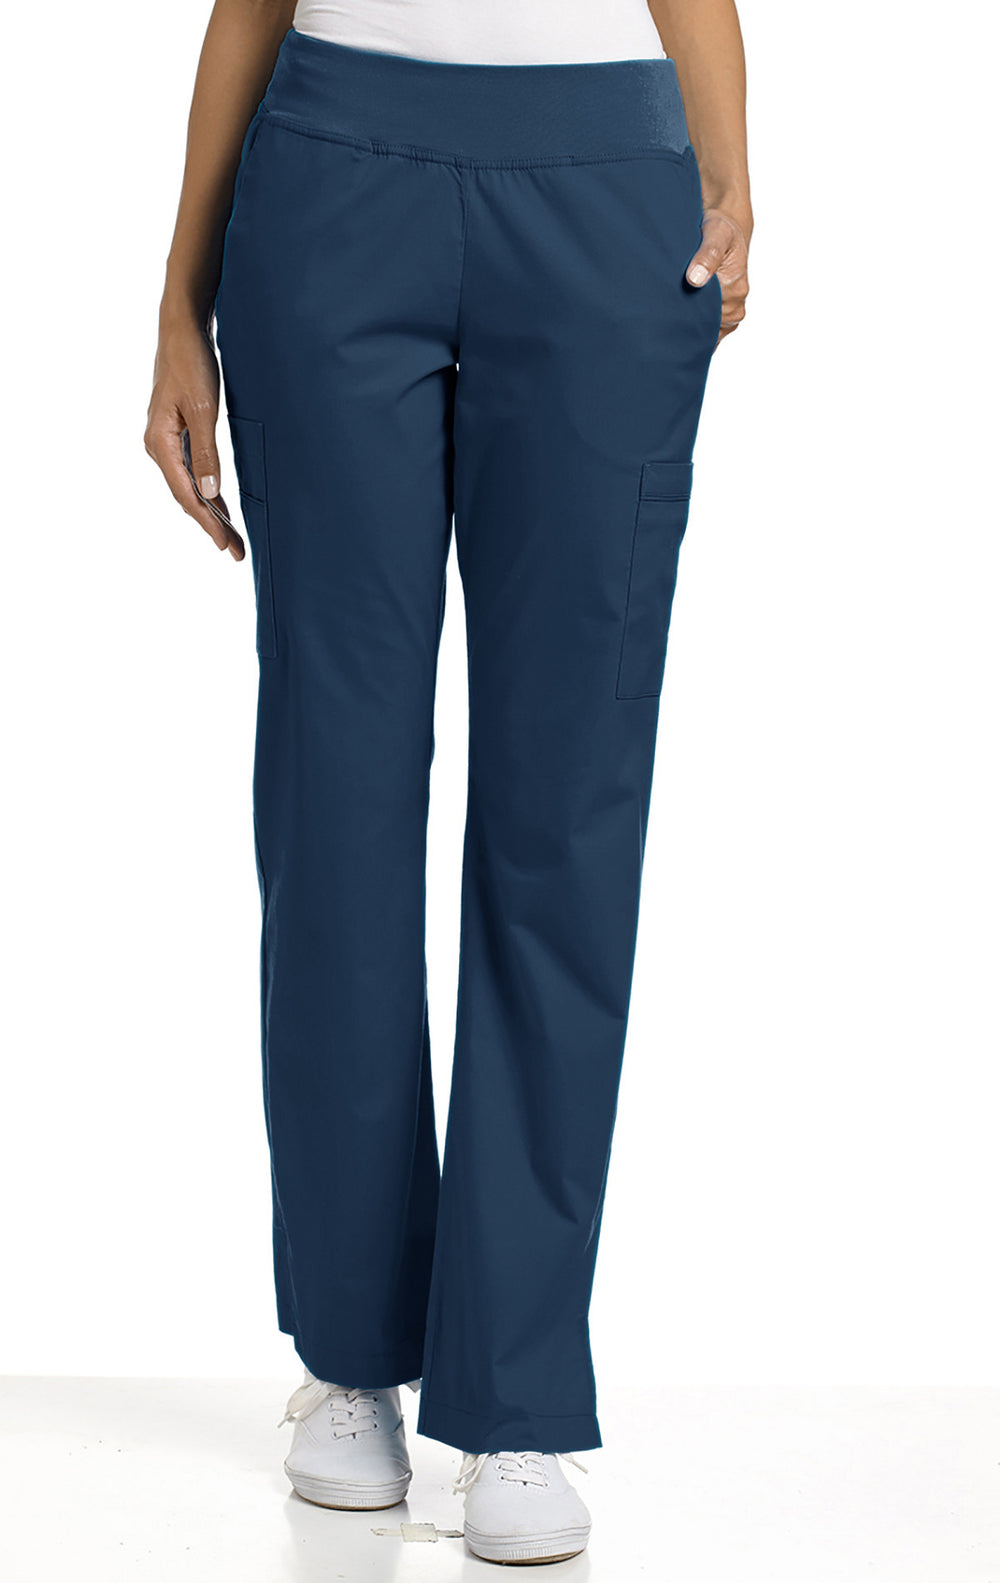 LADIES ALLURE YOGA SCRUB PANTS